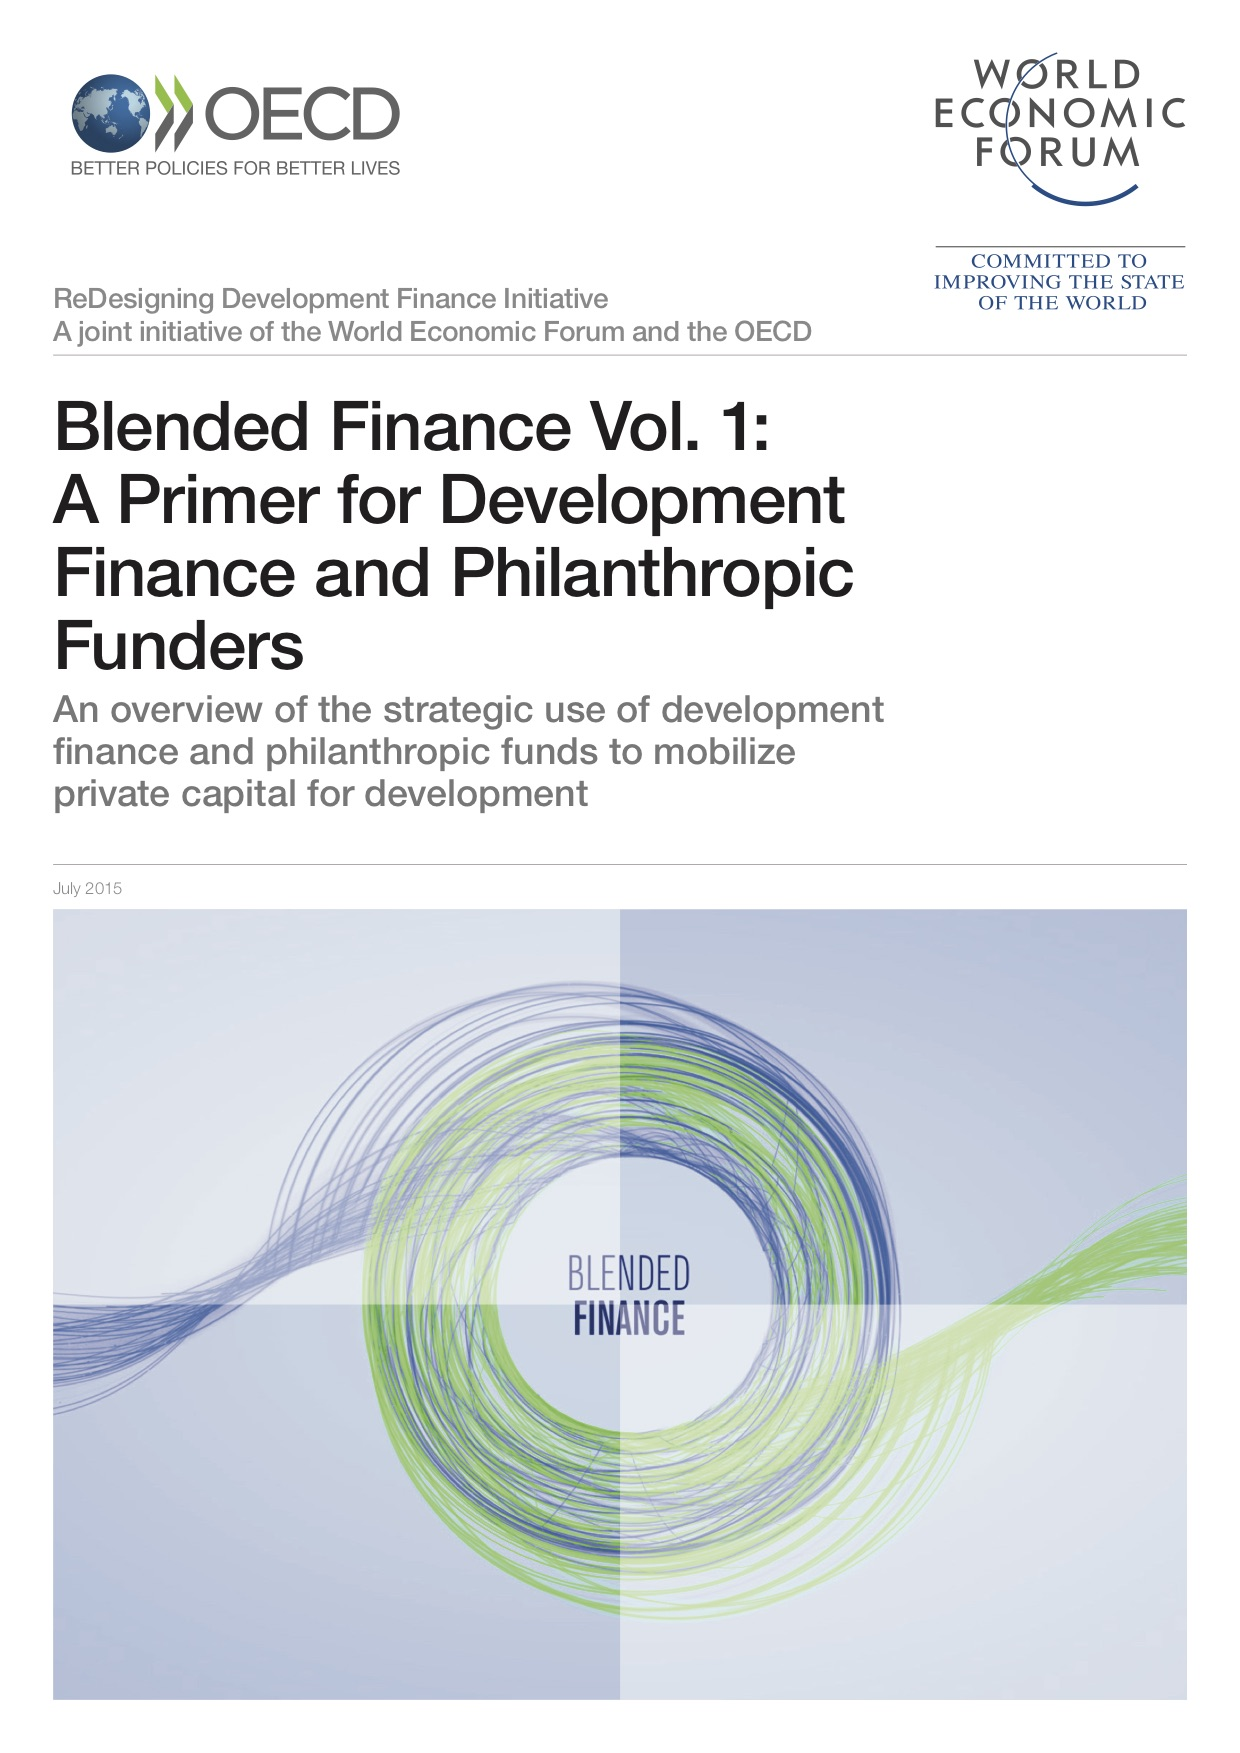 Blended Finance Vol. 1: A Primer for Development Finance and Philanthropic Funders